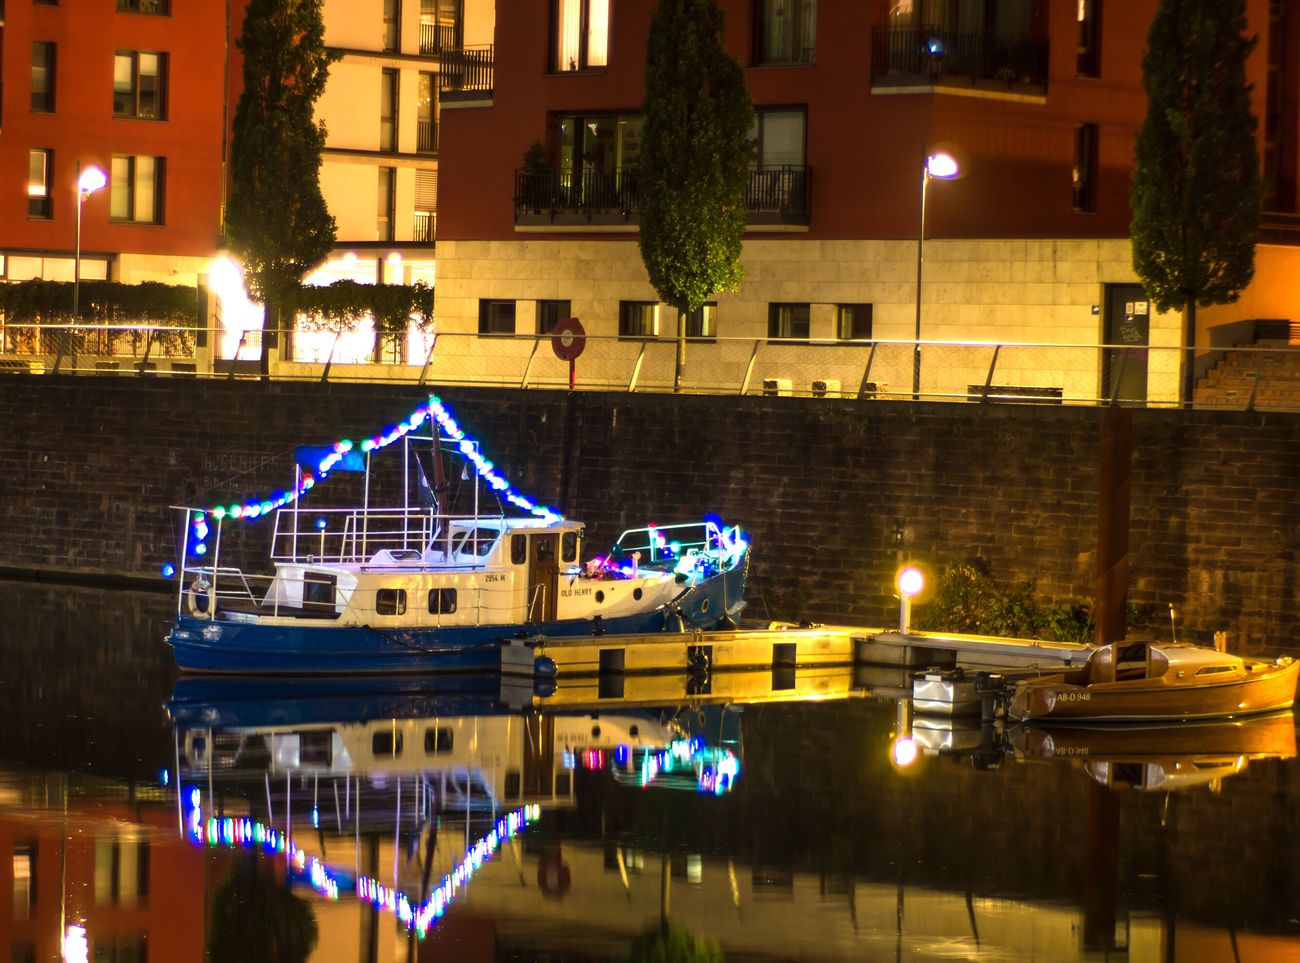 Old Henry, partyboat. Illuminated Night Building Exterior Architecture Reflection Built Structure Transportation City Water Tree No People Christmas Outdoors Christmas Decoration Sky Frankfurt Westhafen Boat Lightchain